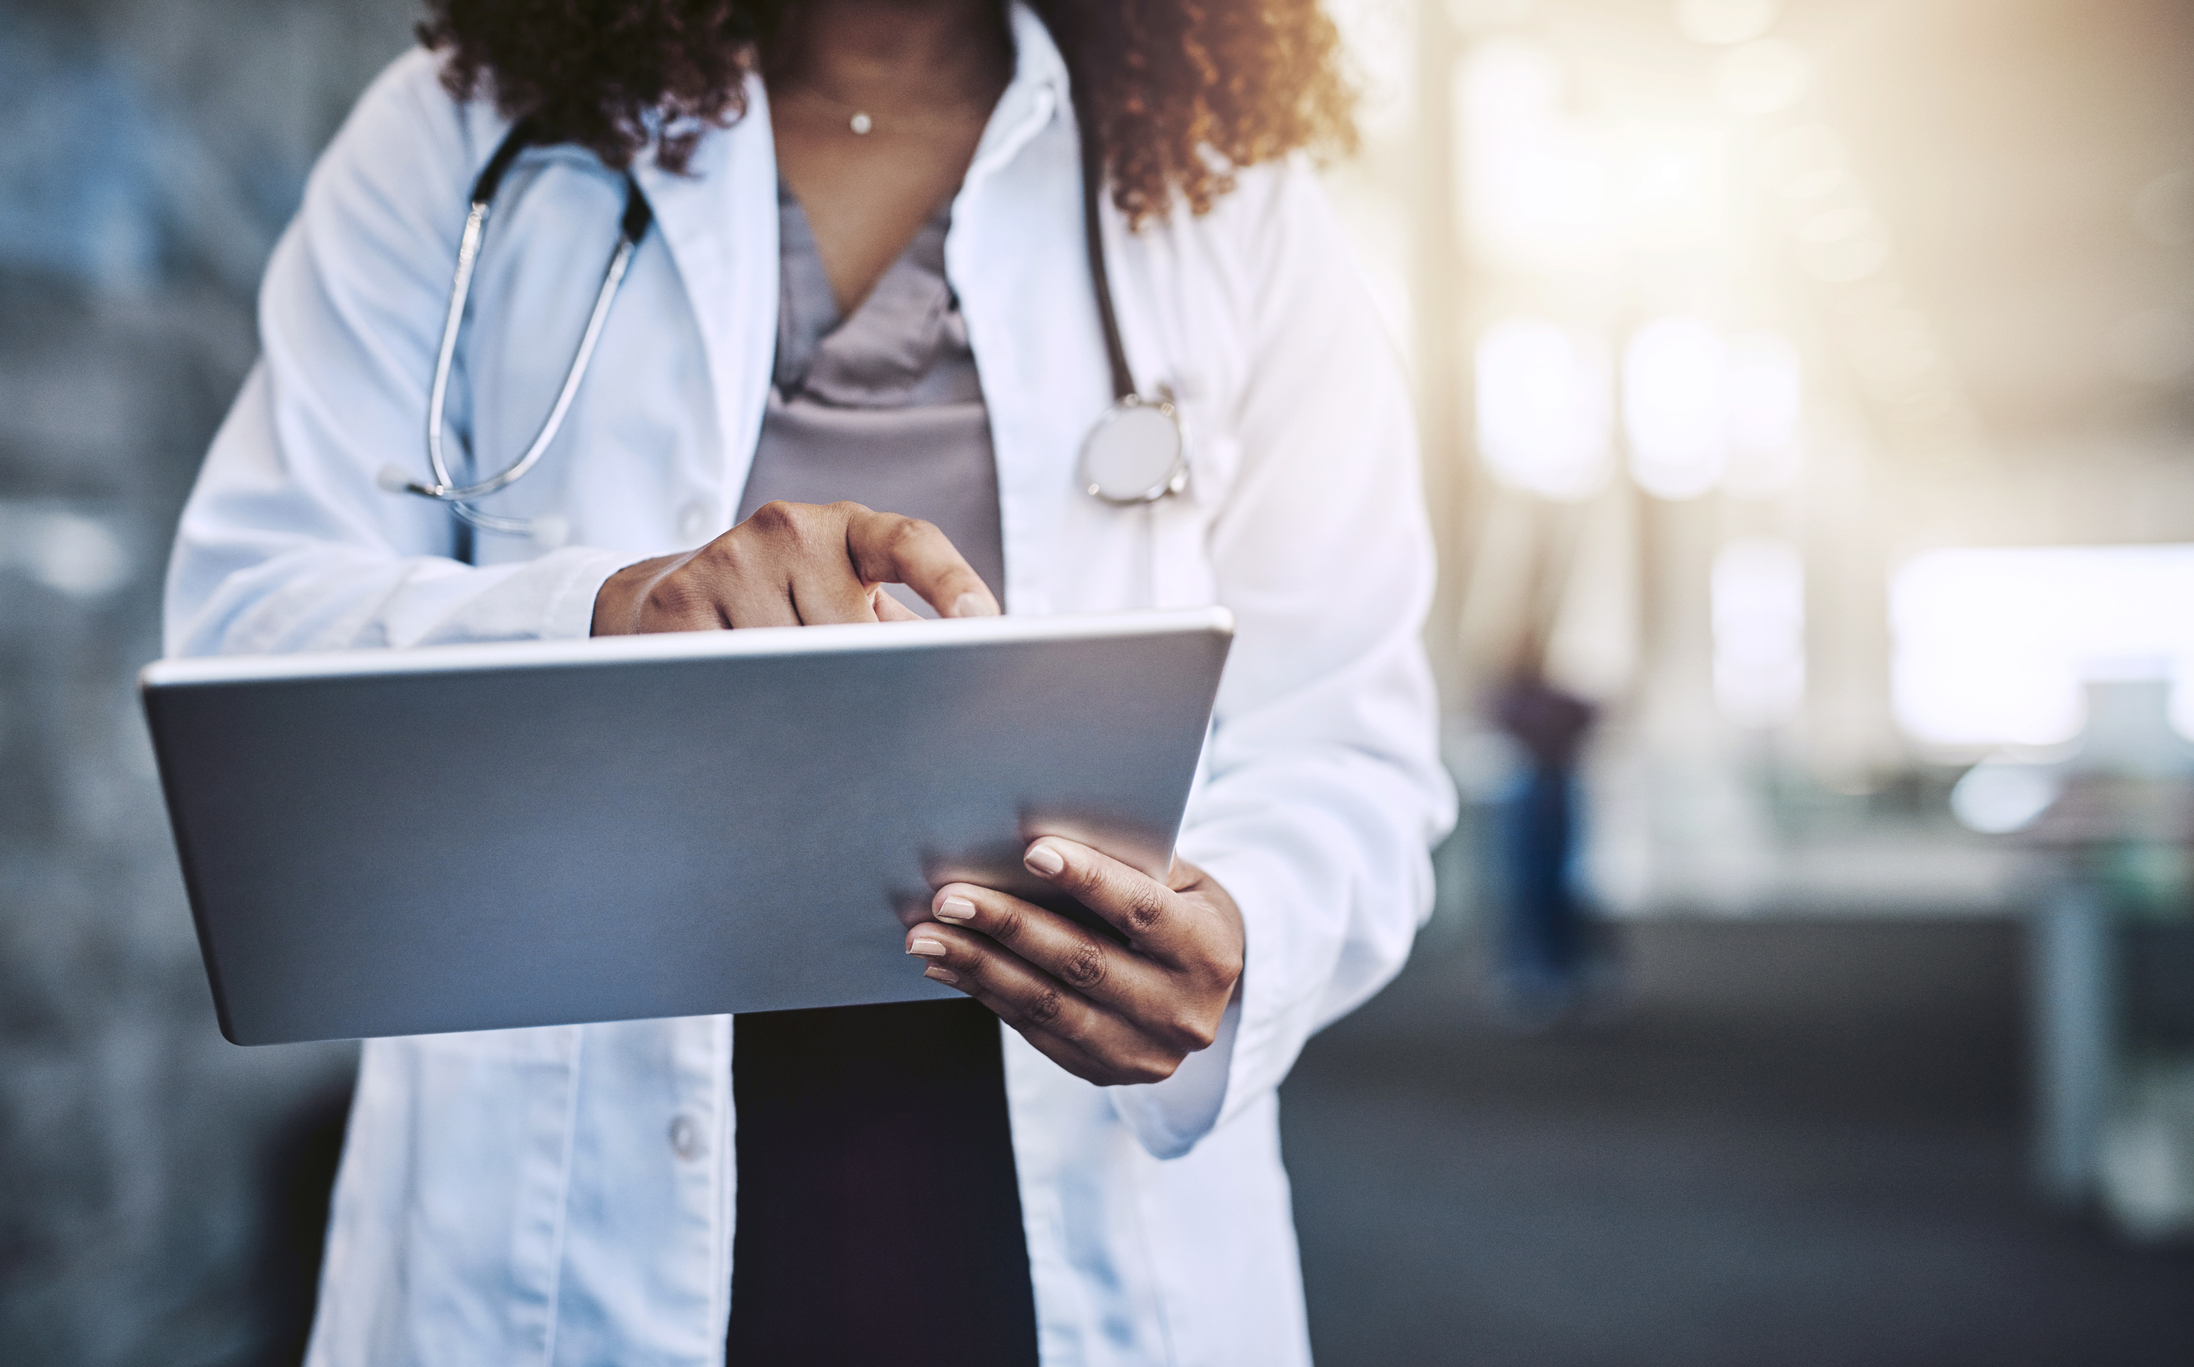 African American female doctor in white coat on a tablet